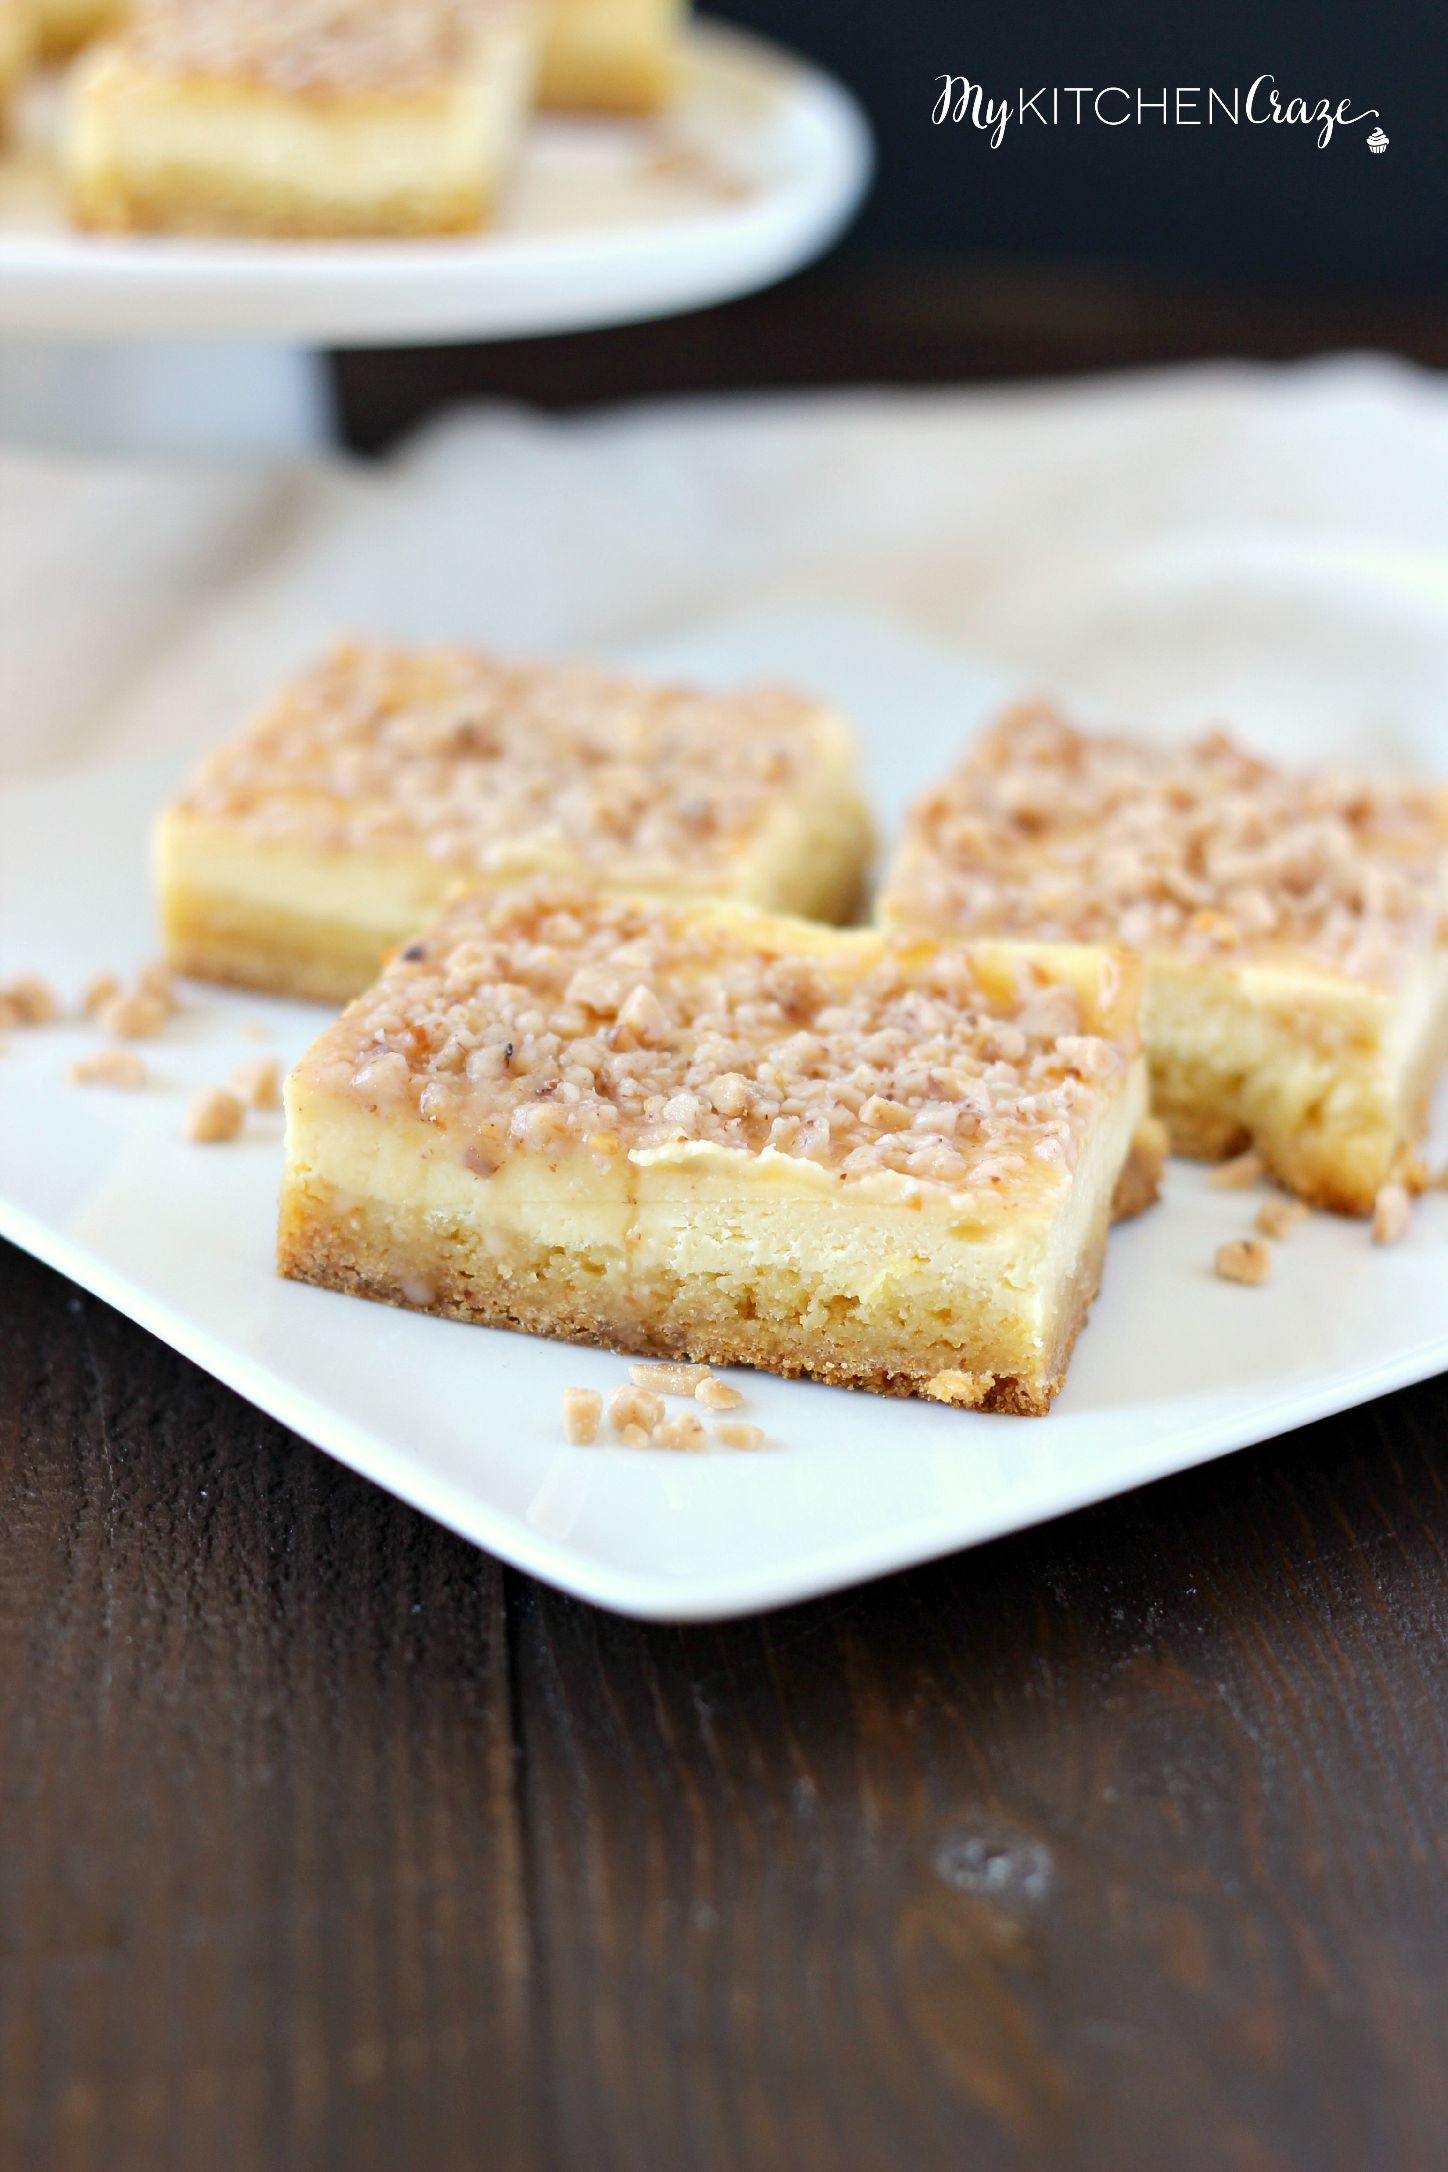 Toffee Cheesecake Bars ~ mykitchencraze ~ These bars are not only easy to throw together, but taste amazing! Sugar cookie bottom. Topped with a creamy cheesecake and sprinkled with toffee bits. What more could you ask for?